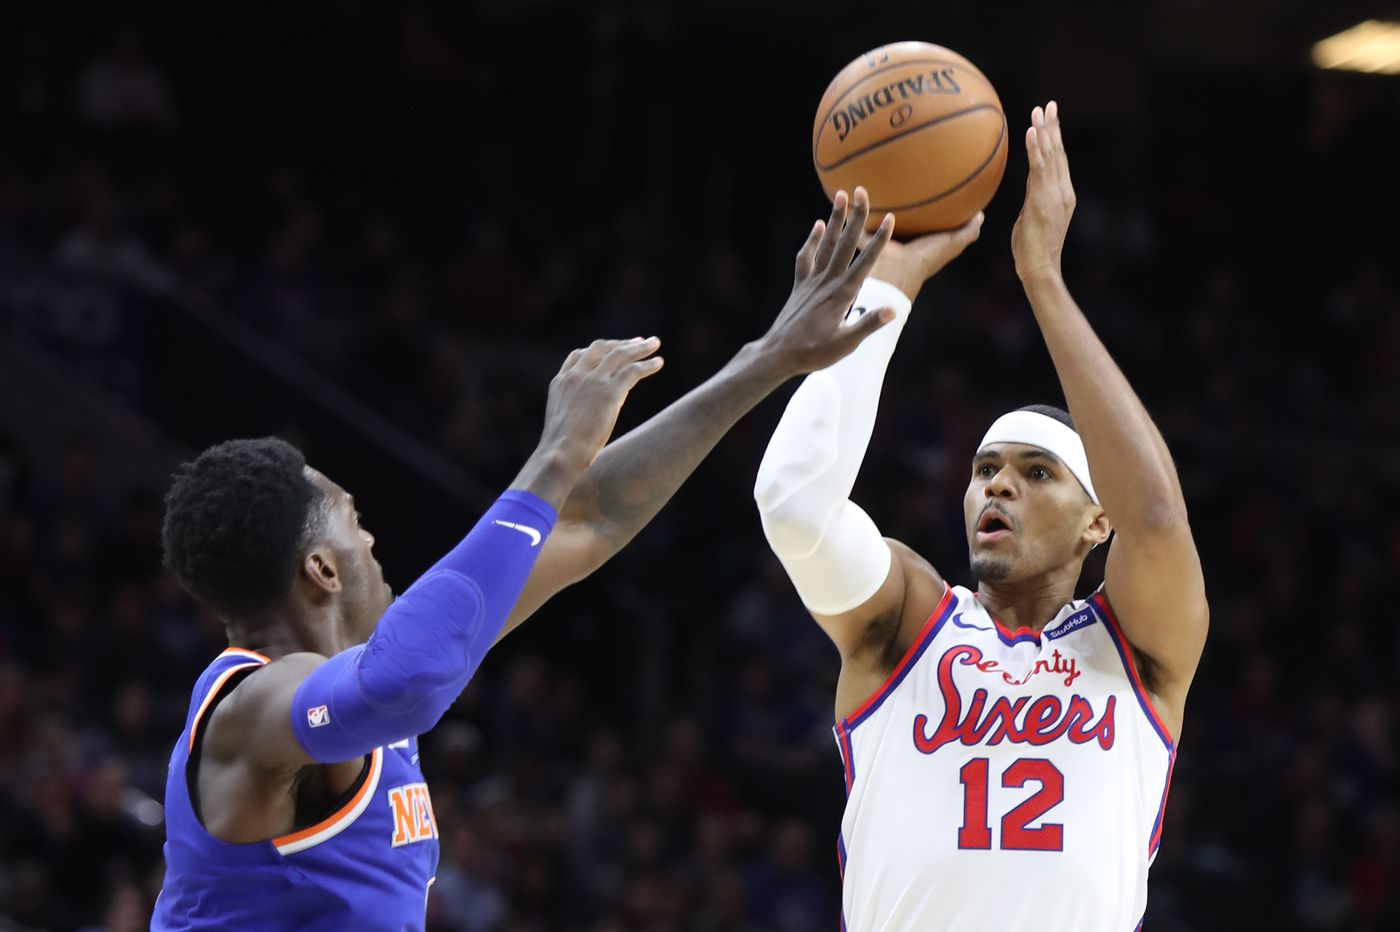 Sixers observations: Tobias Harris is going to need more games like this. At least they're still better than the Knicks! | David Murphy